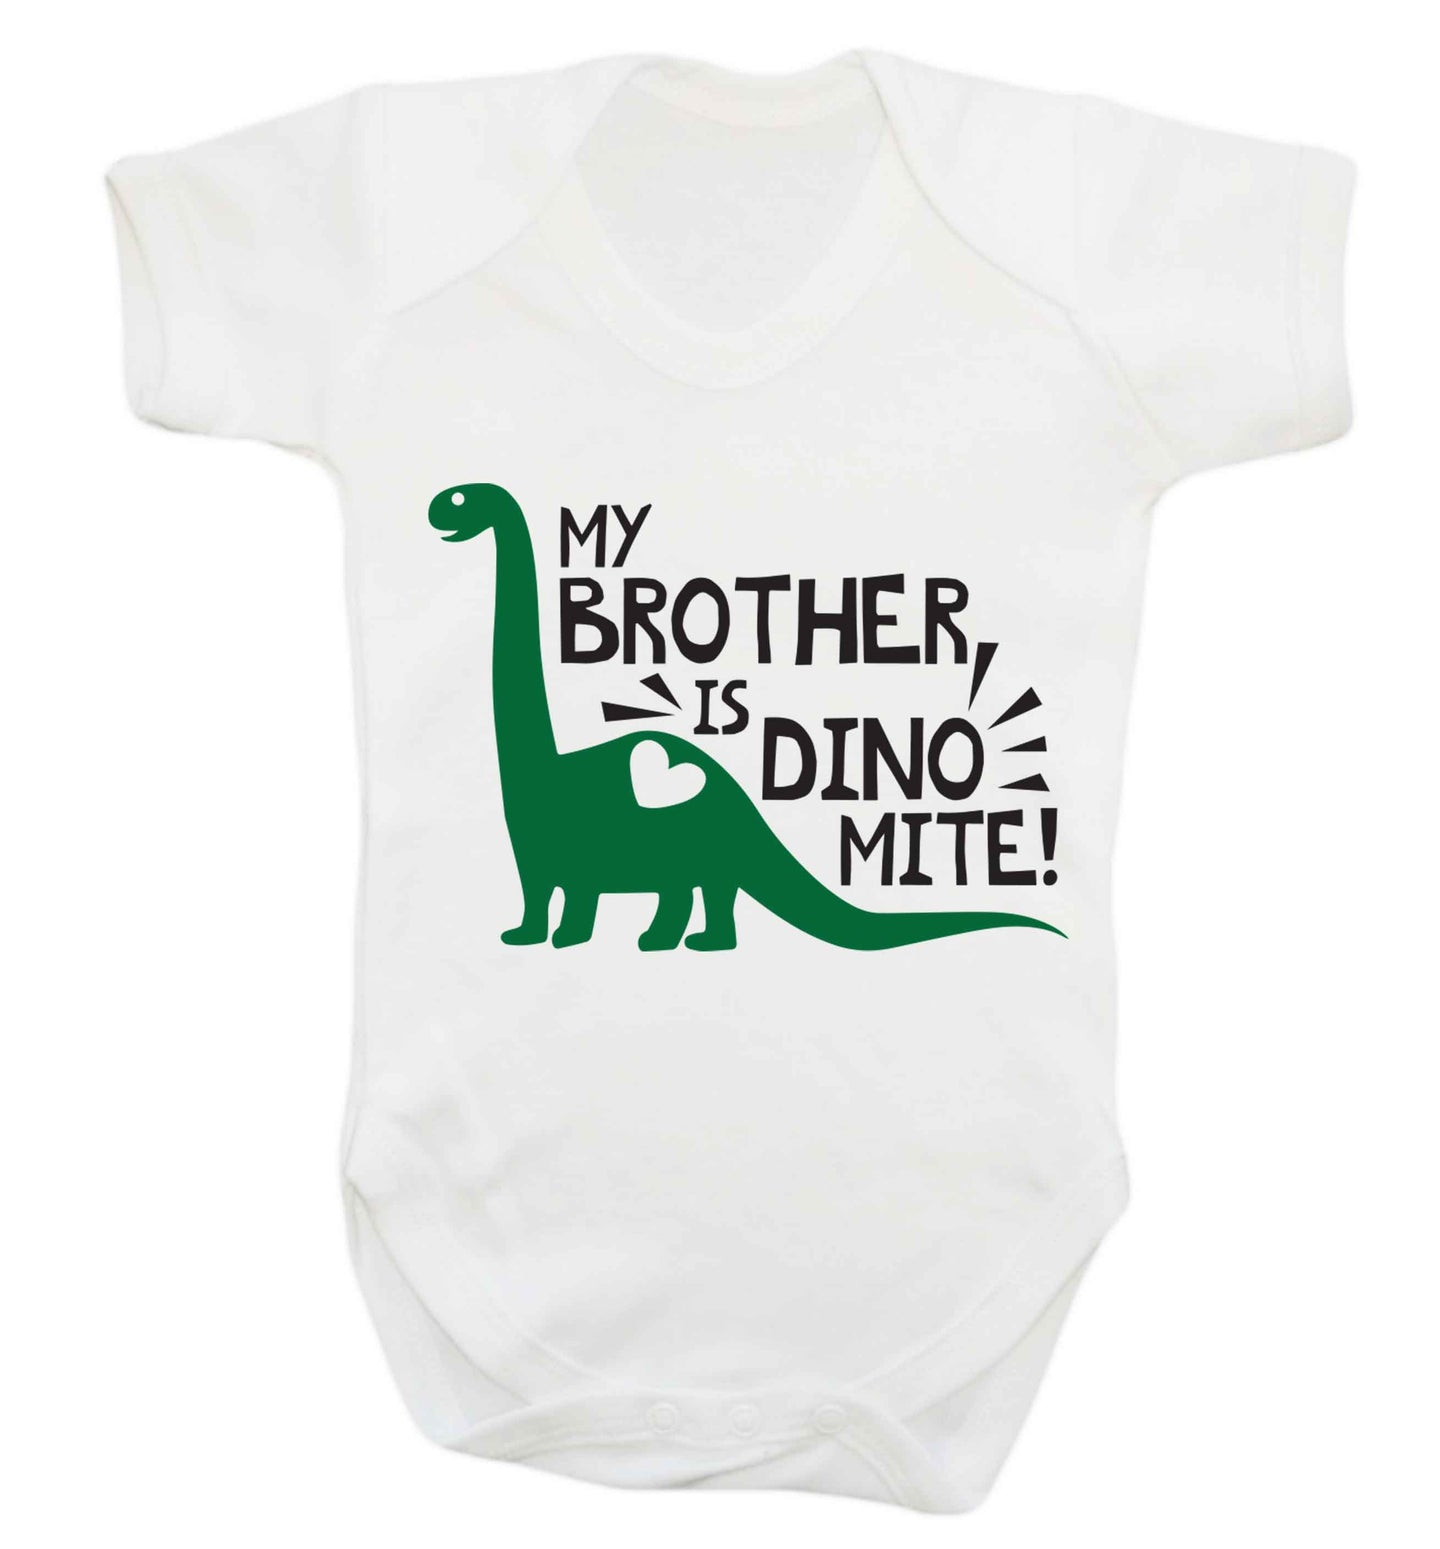 My brother is dinomite! Baby Vest white 18-24 months